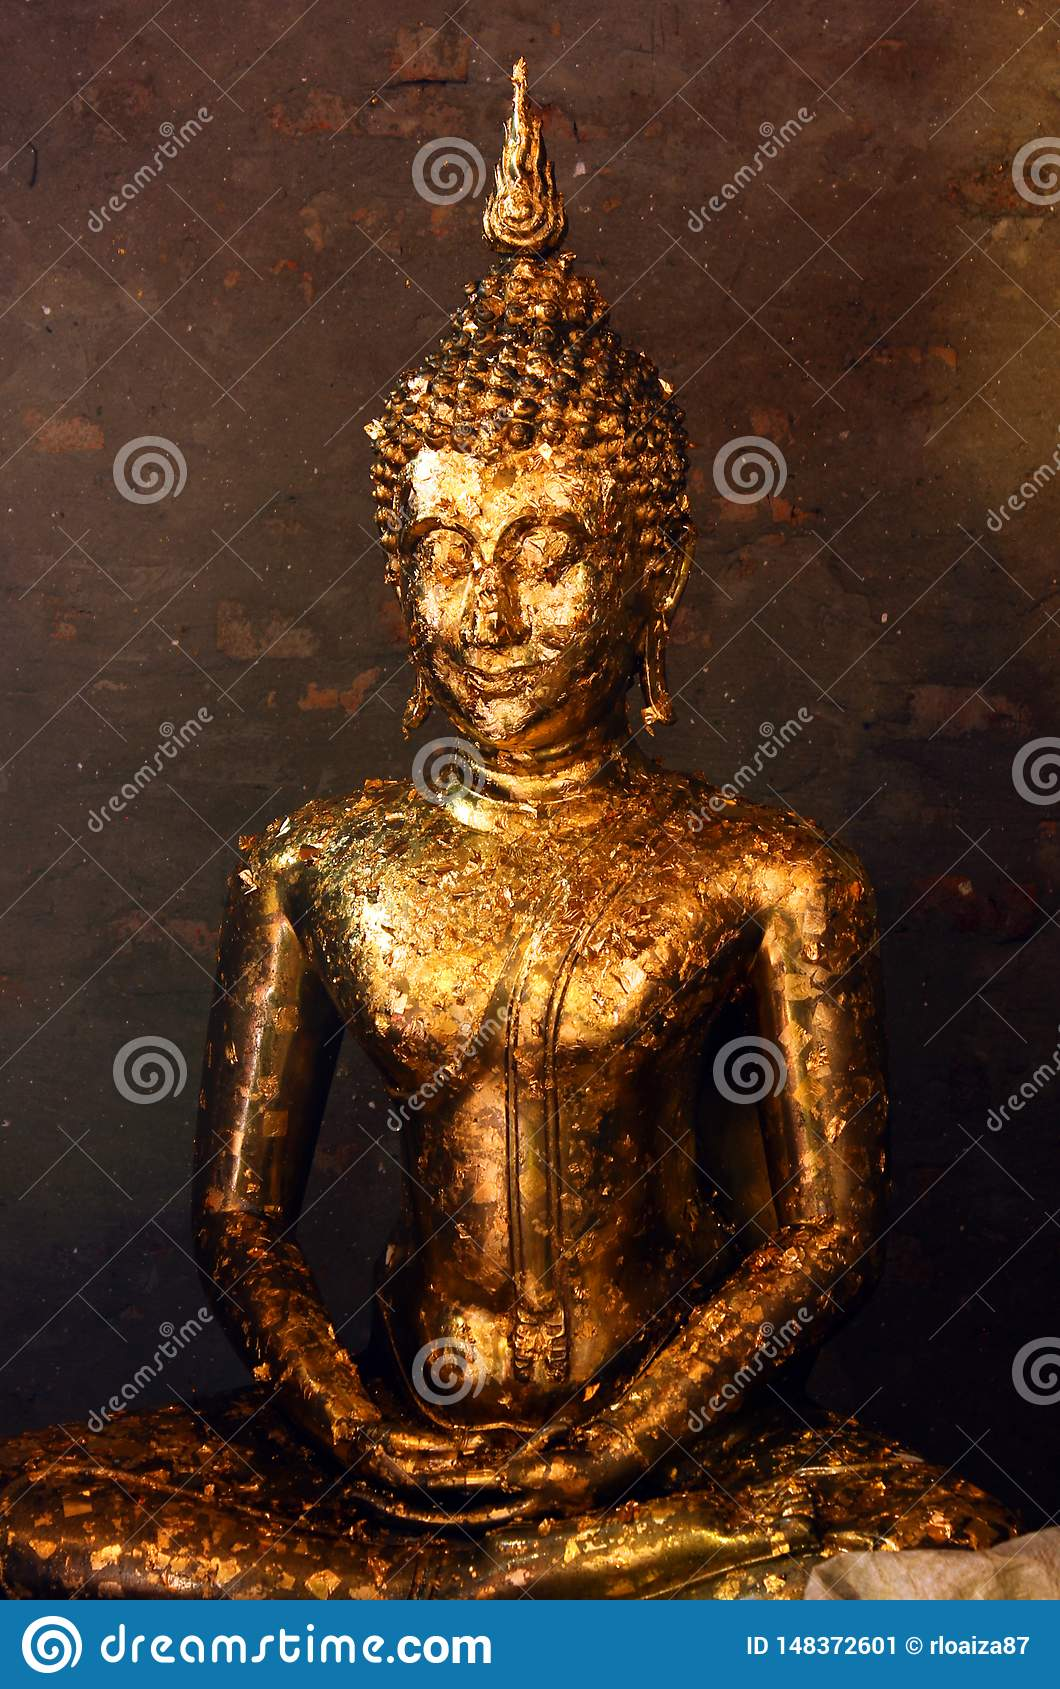 Buddha statue covered with offering of golden leaves wai phra at Wat Yai Chai Mongkhon temple in Ayutthaya, Thailand.